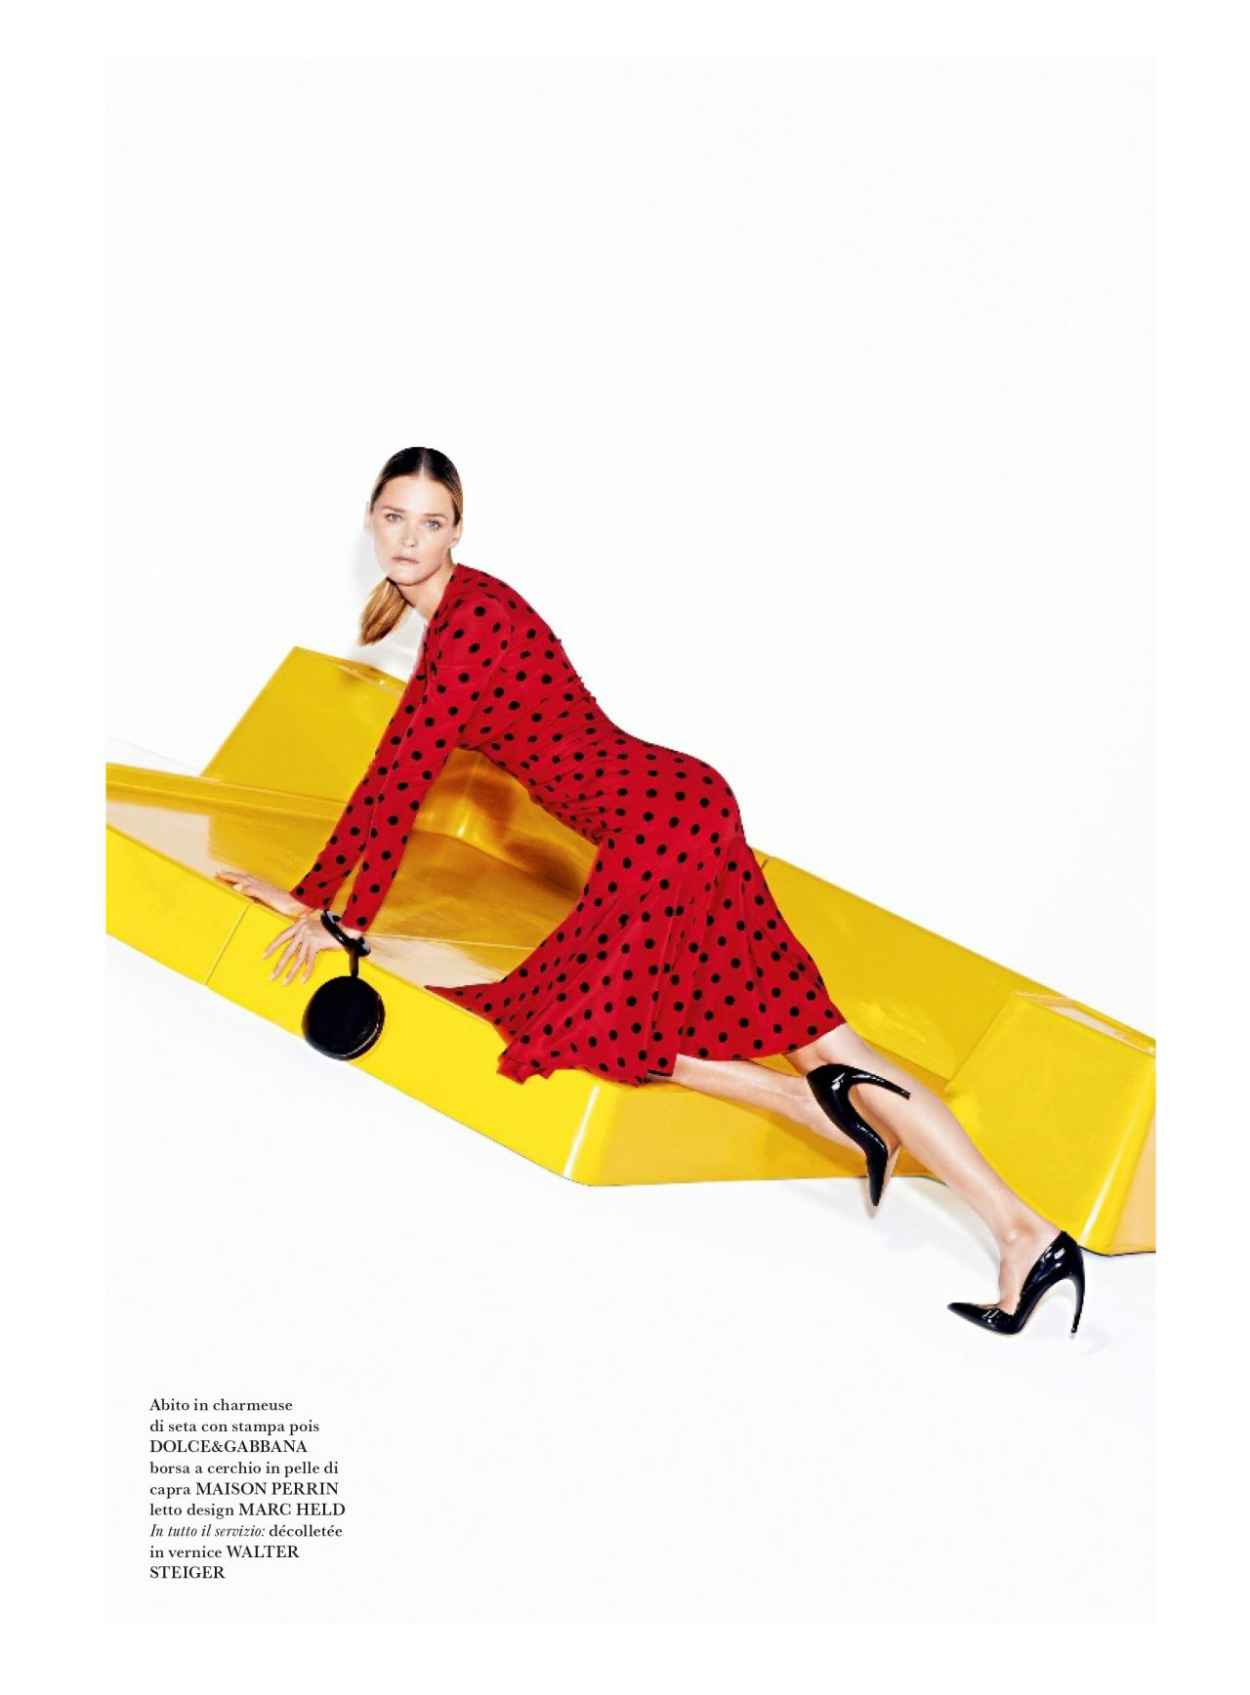 Carmen Kass - Flair #9 Magazine - March 2015 Issue-1